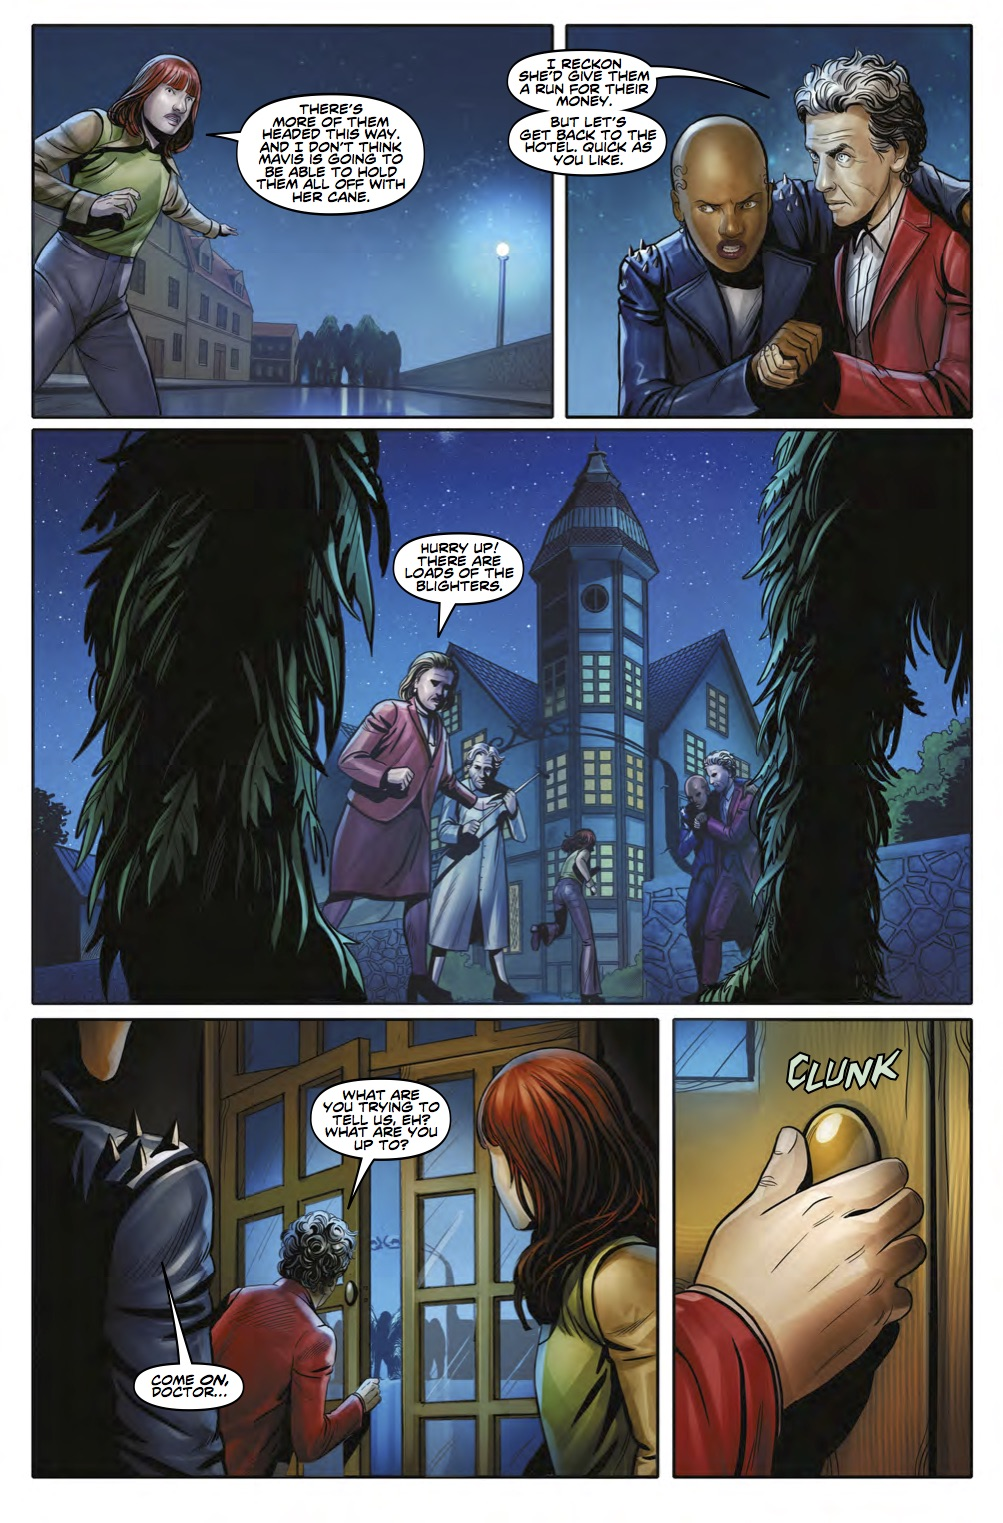 Twelfth Doctor Year Three #3 _Preview 3 (Credit: Titan)